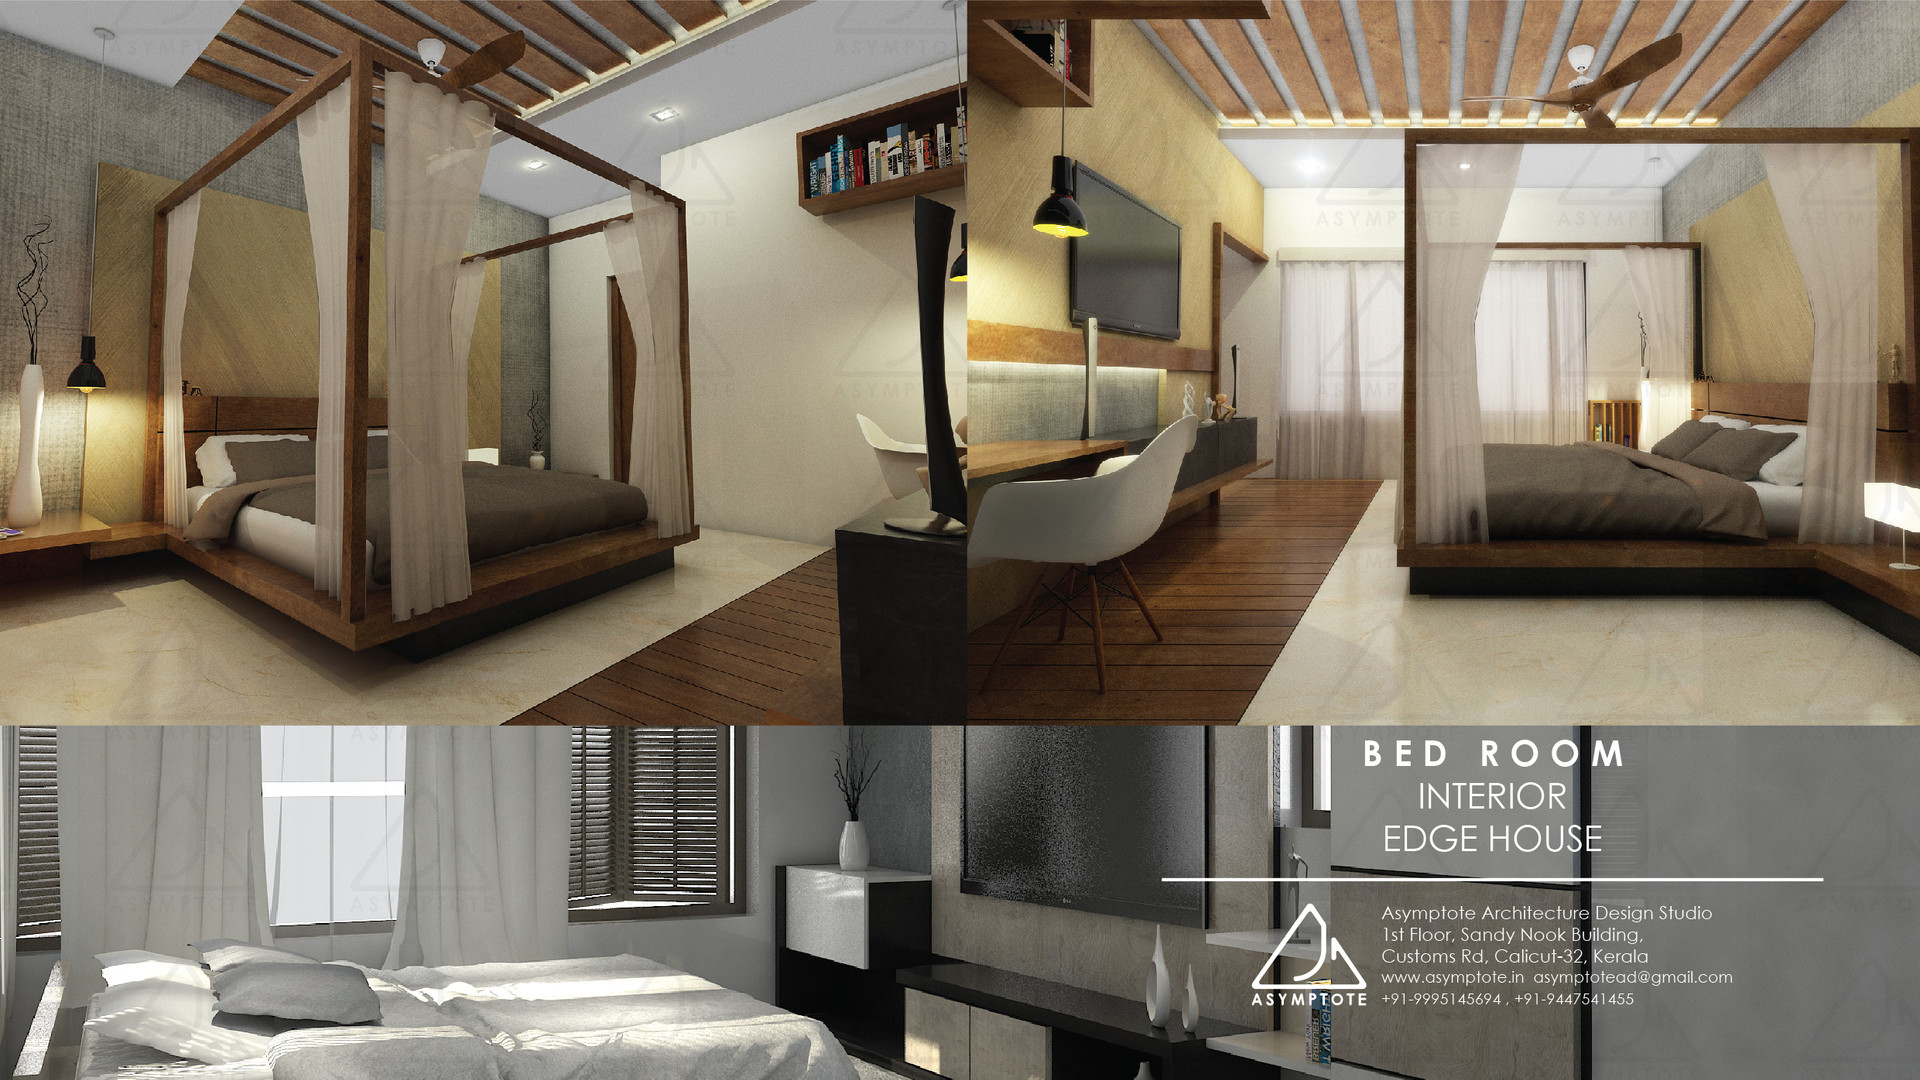 BED ROOM INTERIOR AND OTHER SPACE-04.jpg